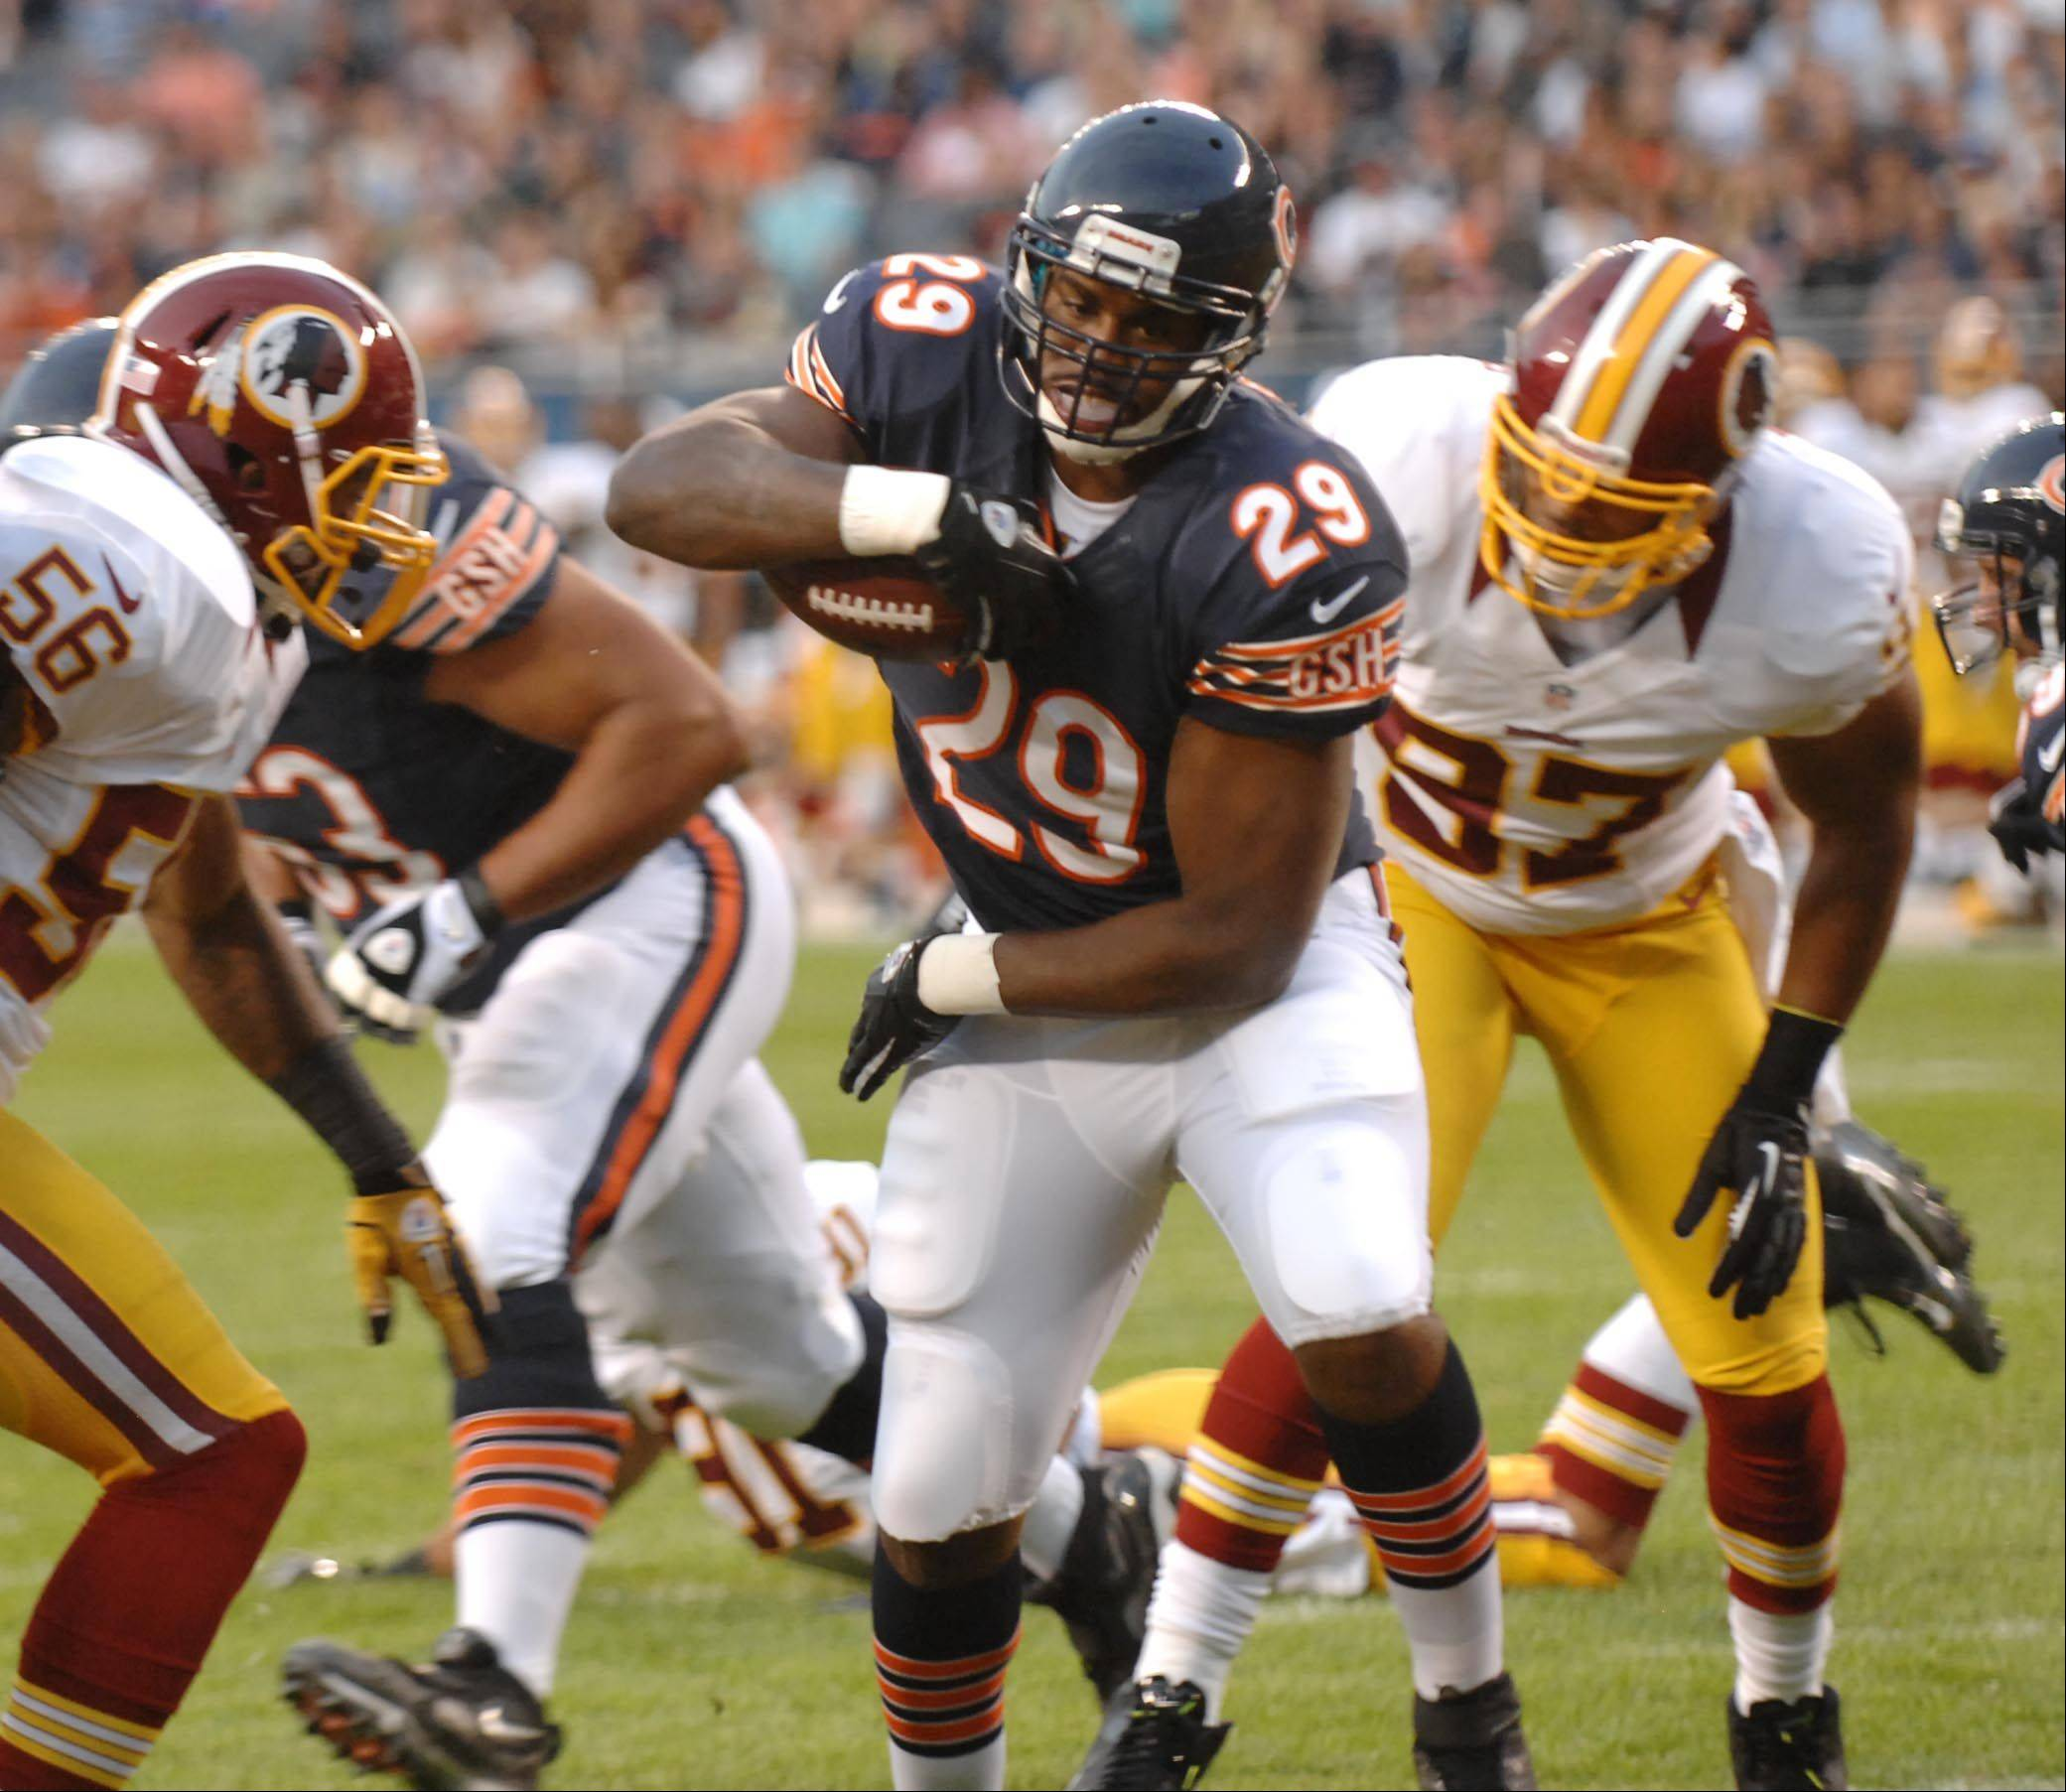 Chicago Bears running back Michael Bush scores the first of his two first-half touchdowns Saturday against the Washington Redskins in the second preseason game at Soldier Field in Chicago.